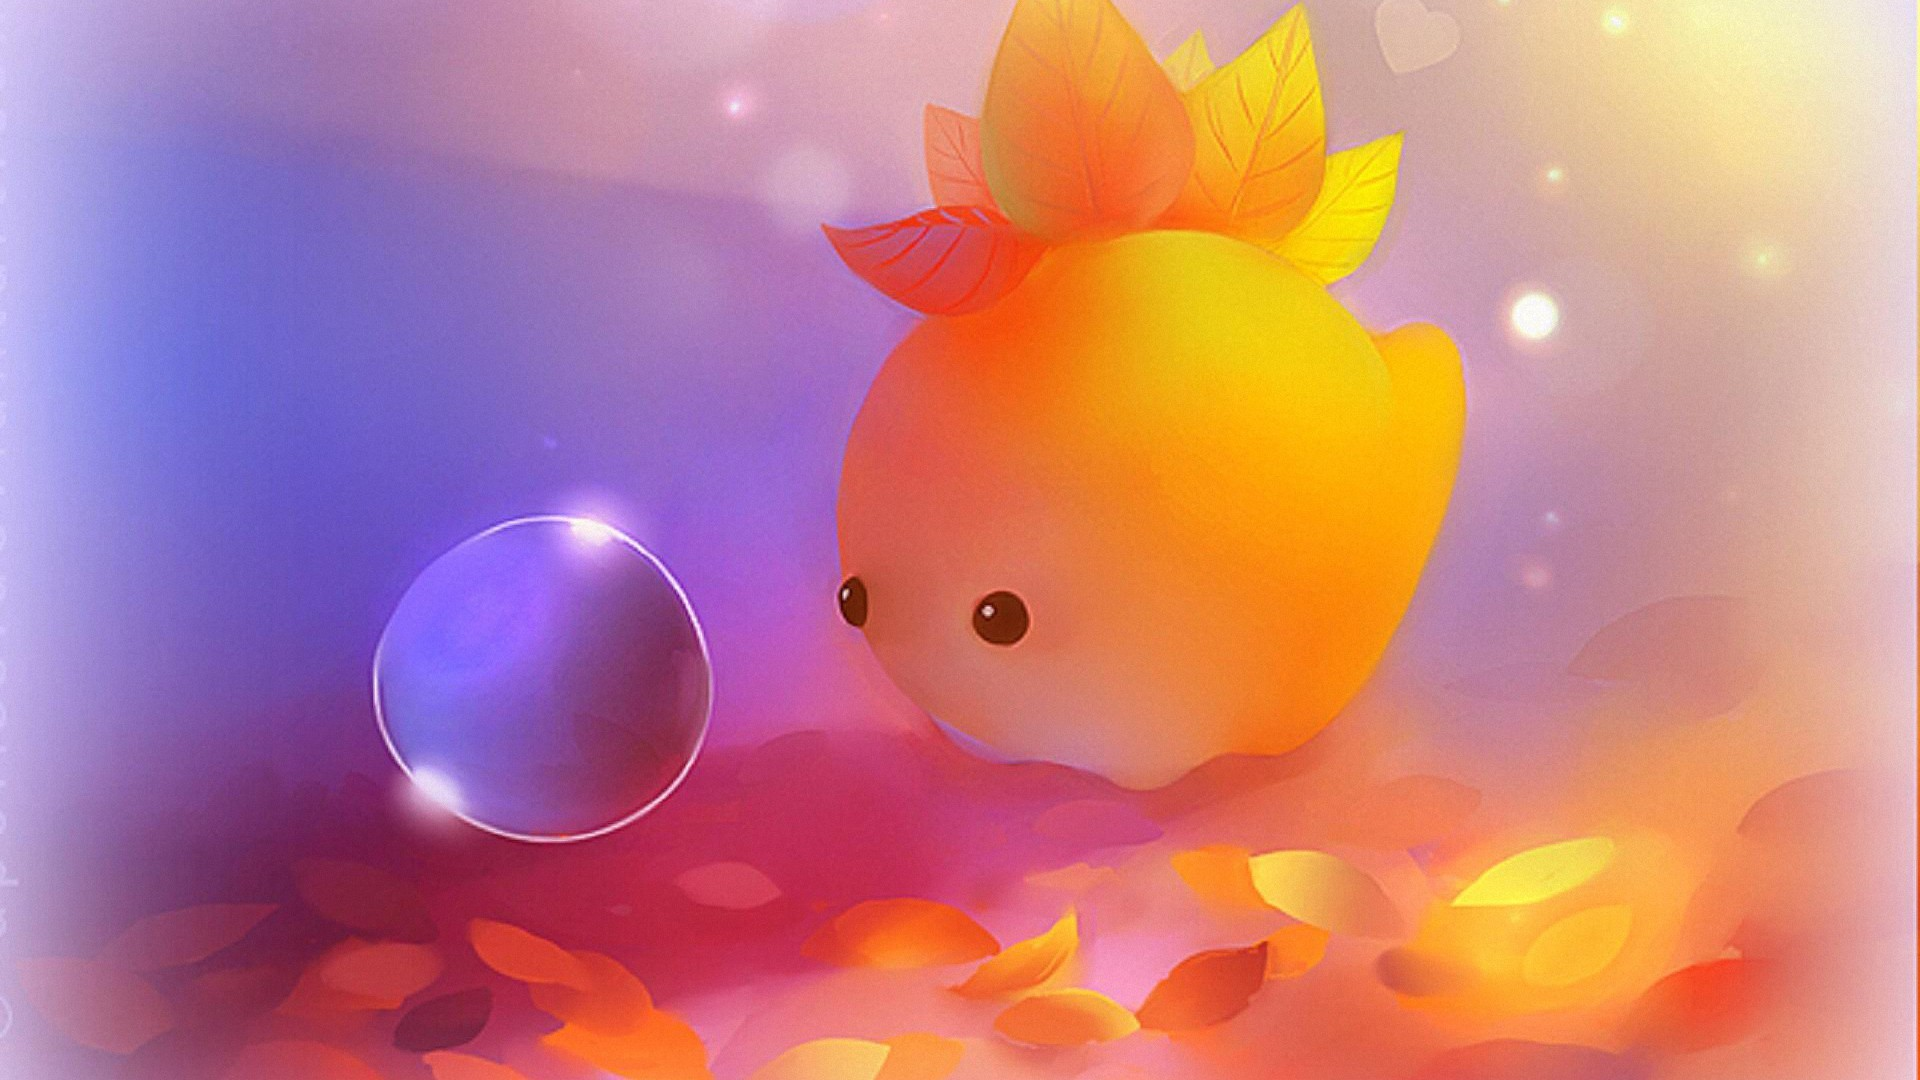 cute backgrounds 47 images